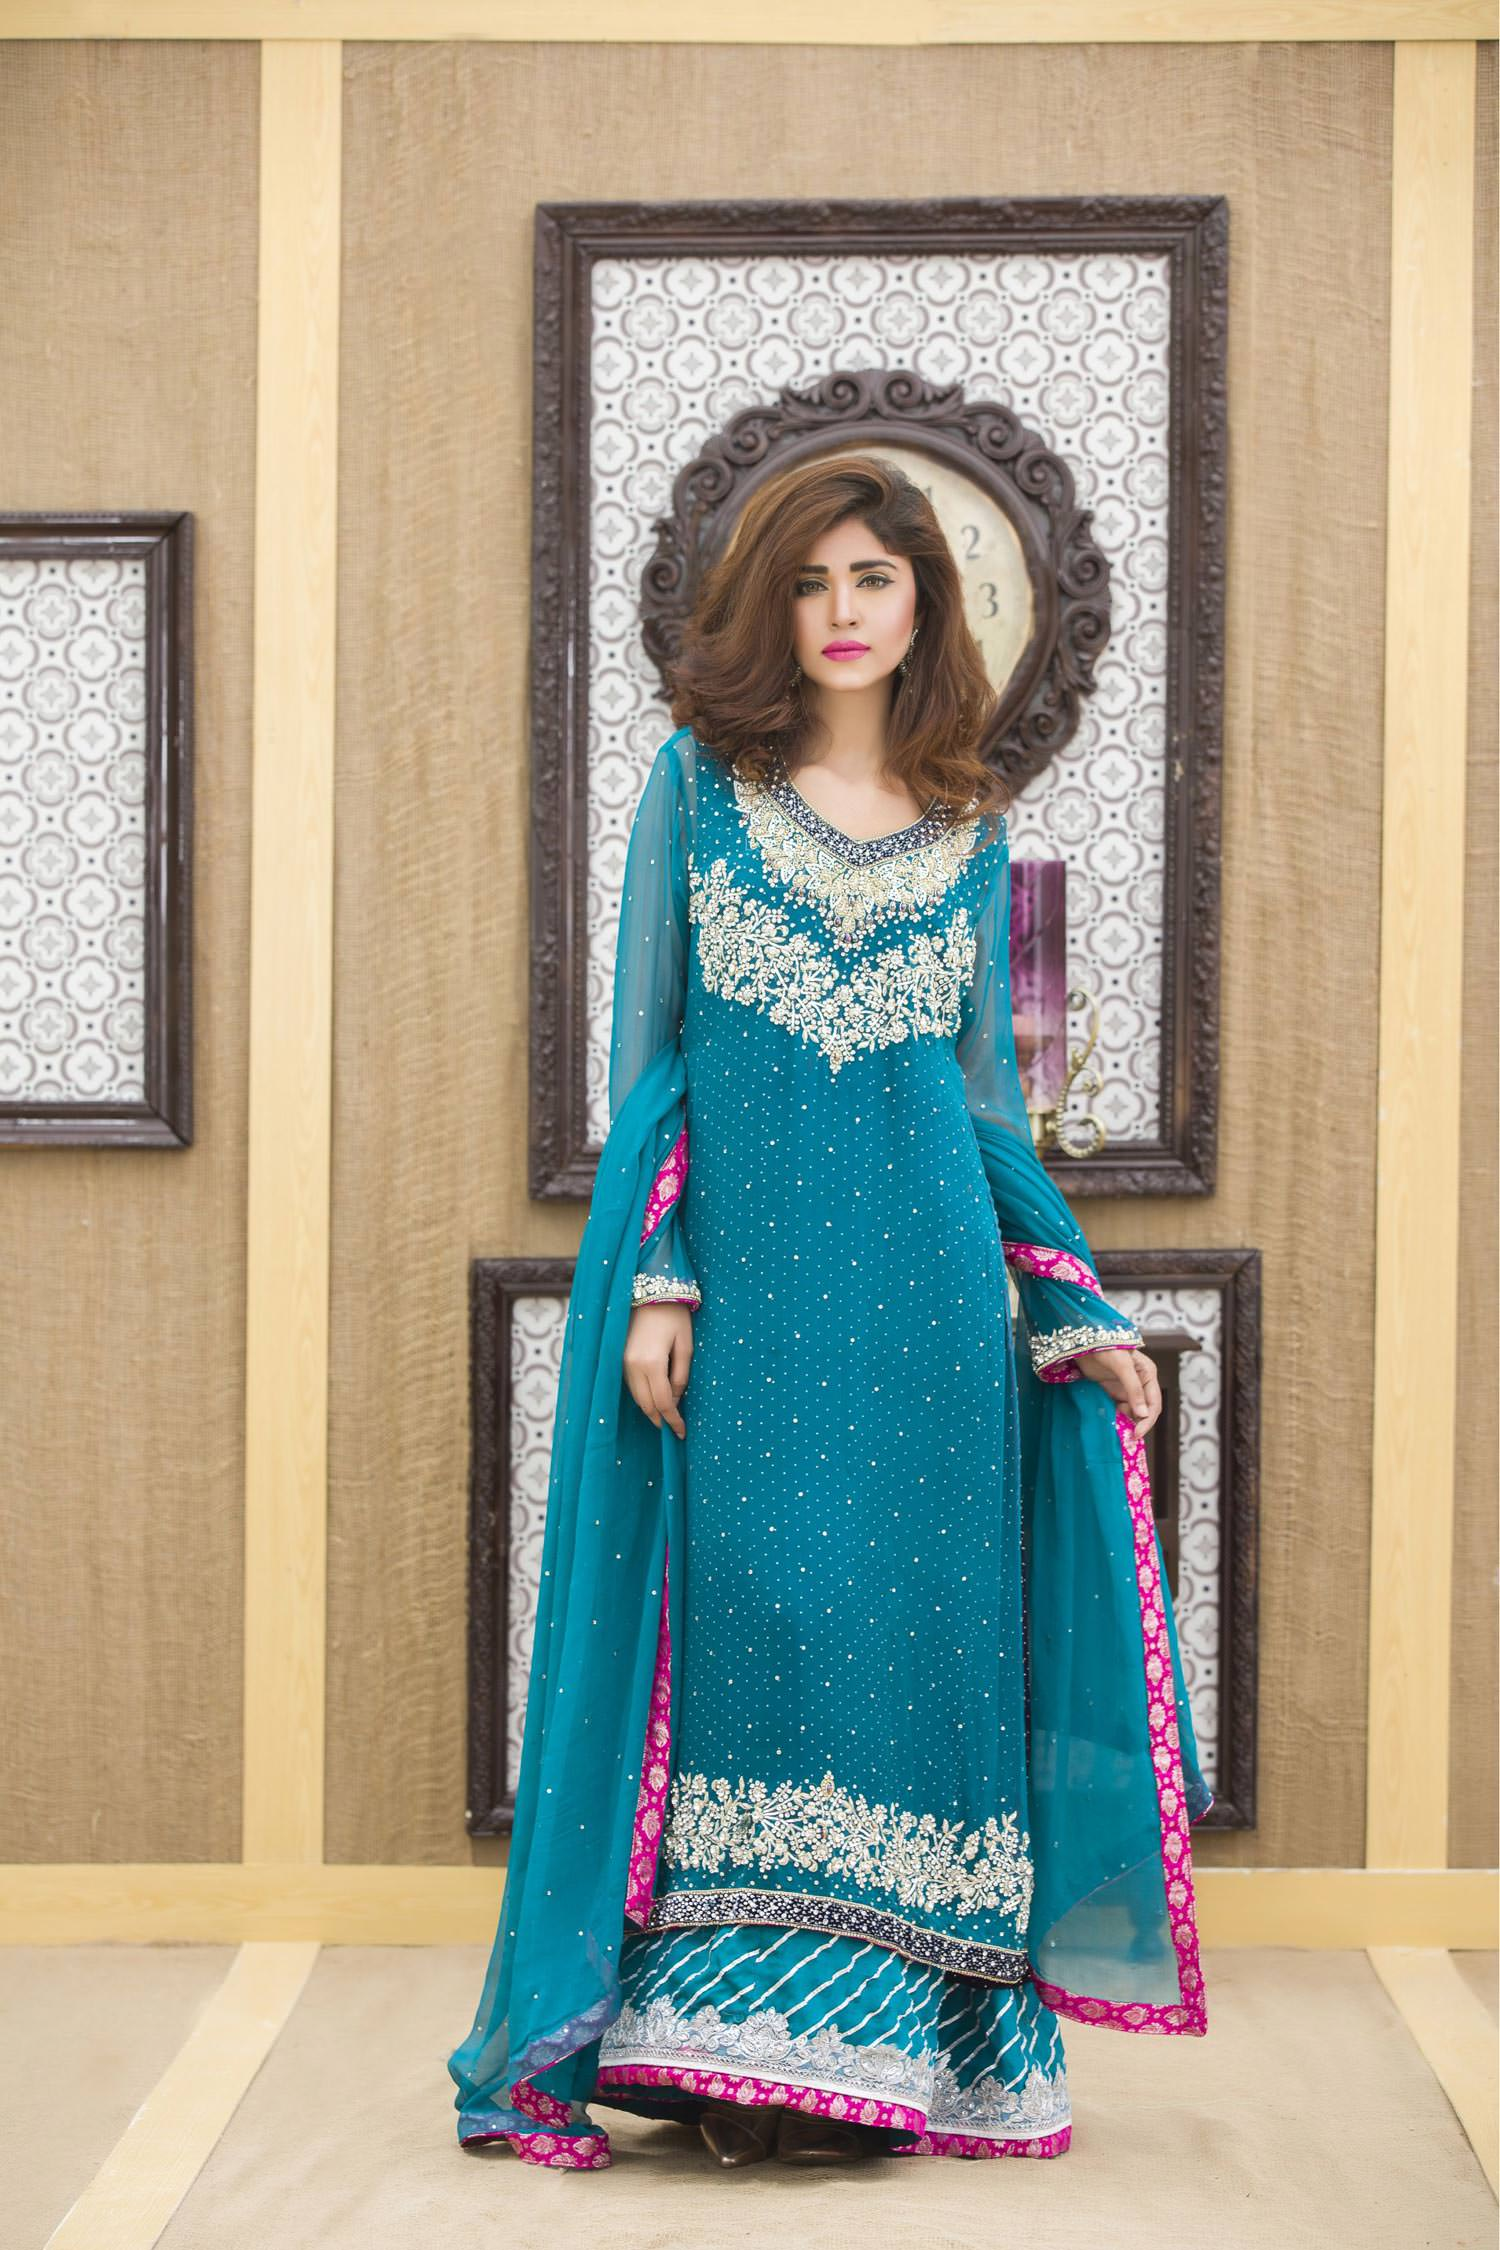 A SEA GREEN NAVY BLUE HAND EMBROIDERY BRIDAL DRESS - Exclusive ...